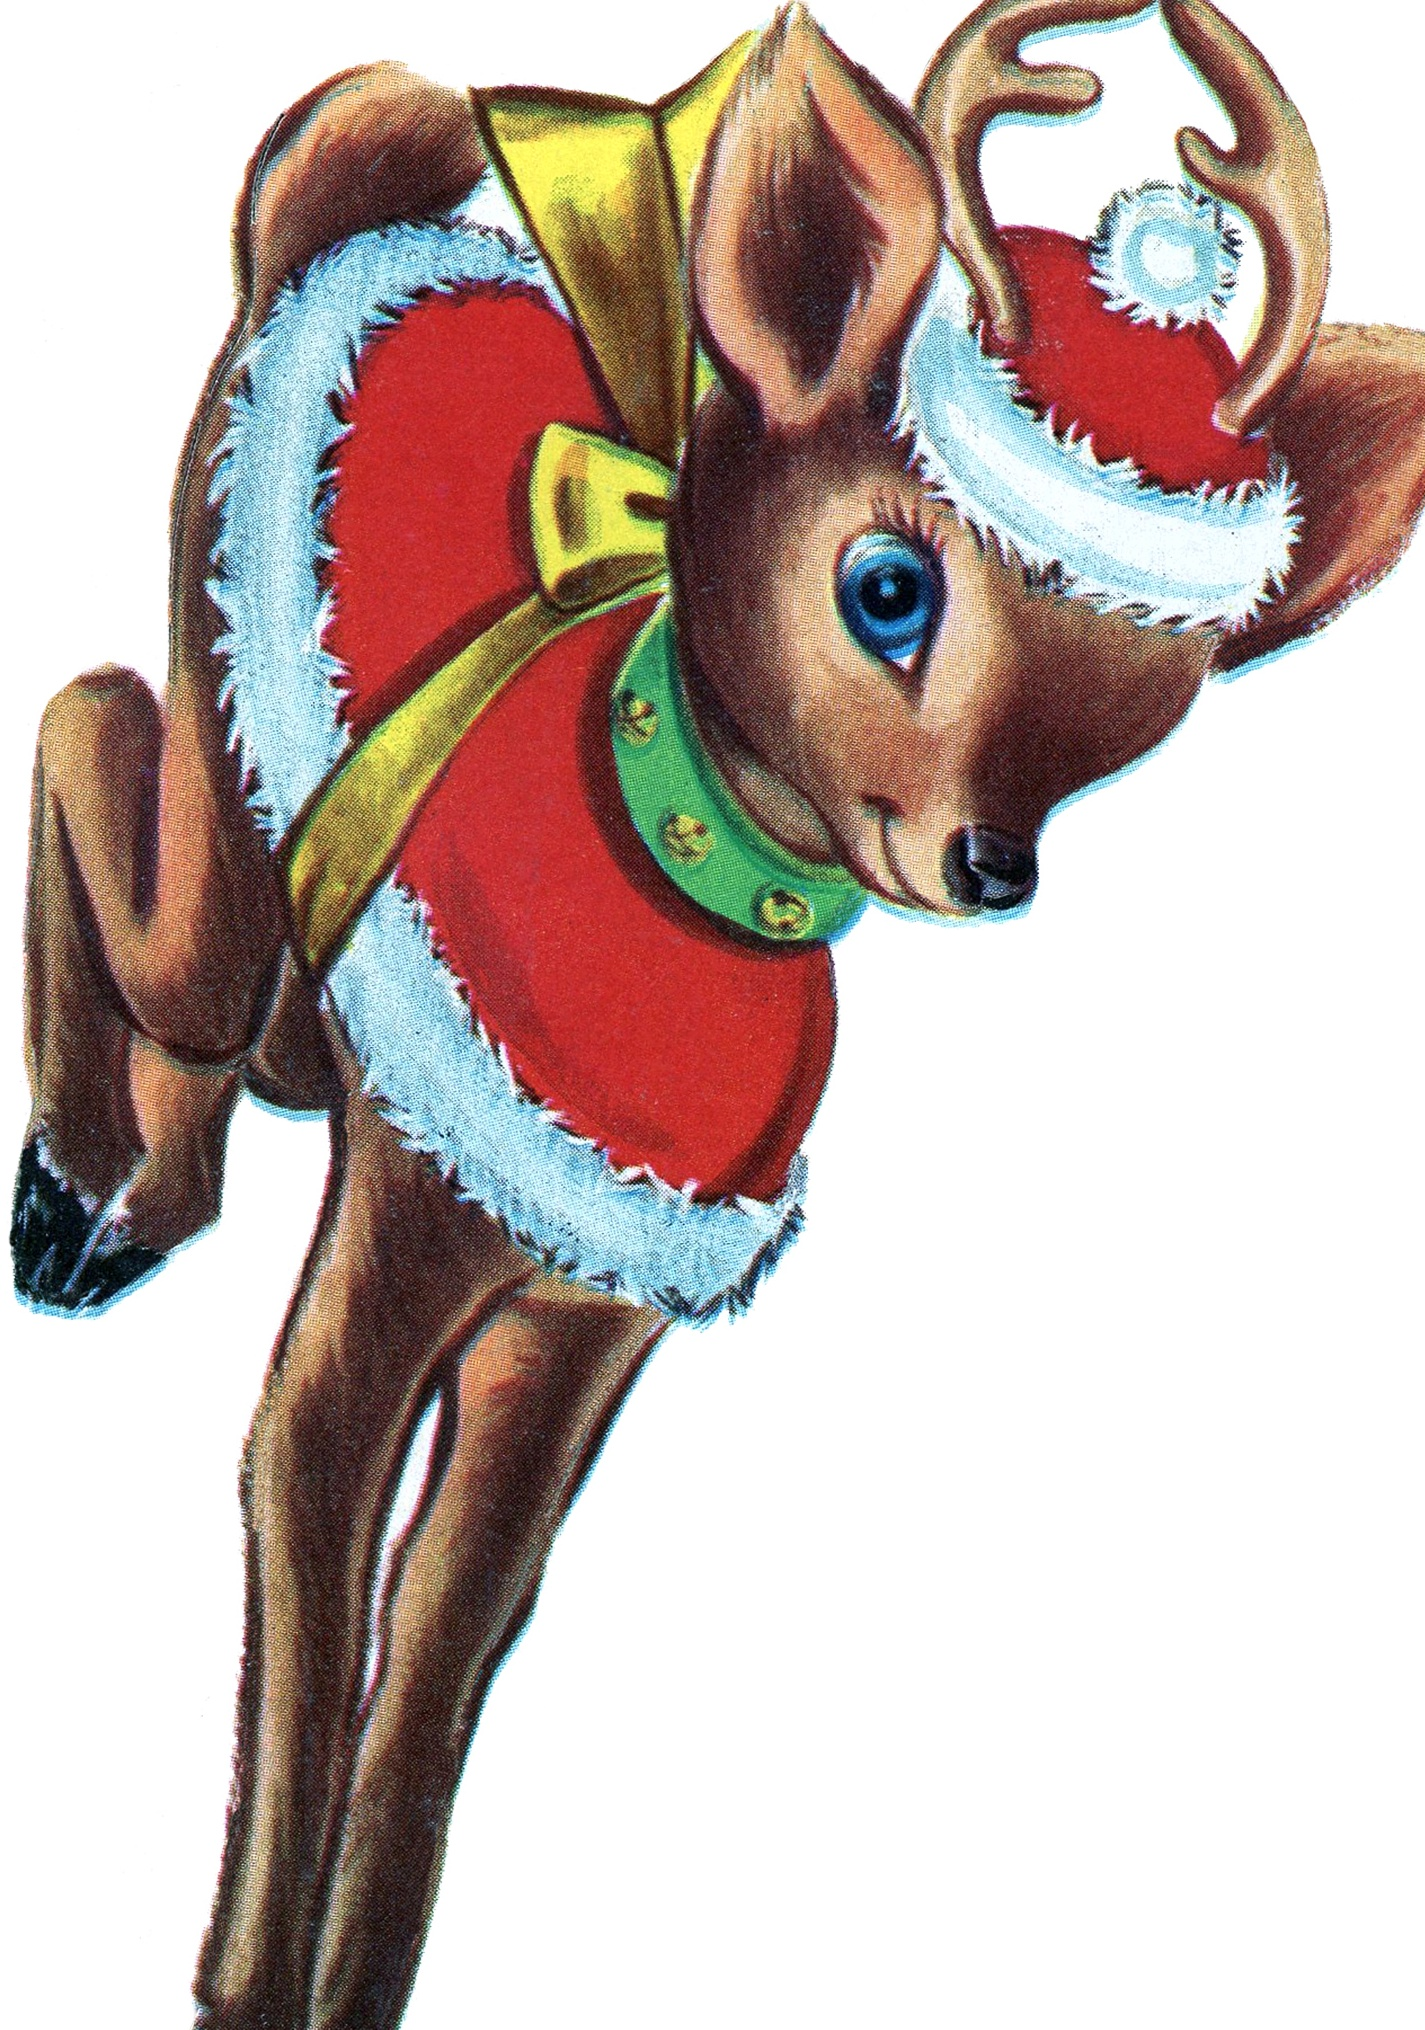 Retro Christmas Reindeer Image - The Graphics Fairy